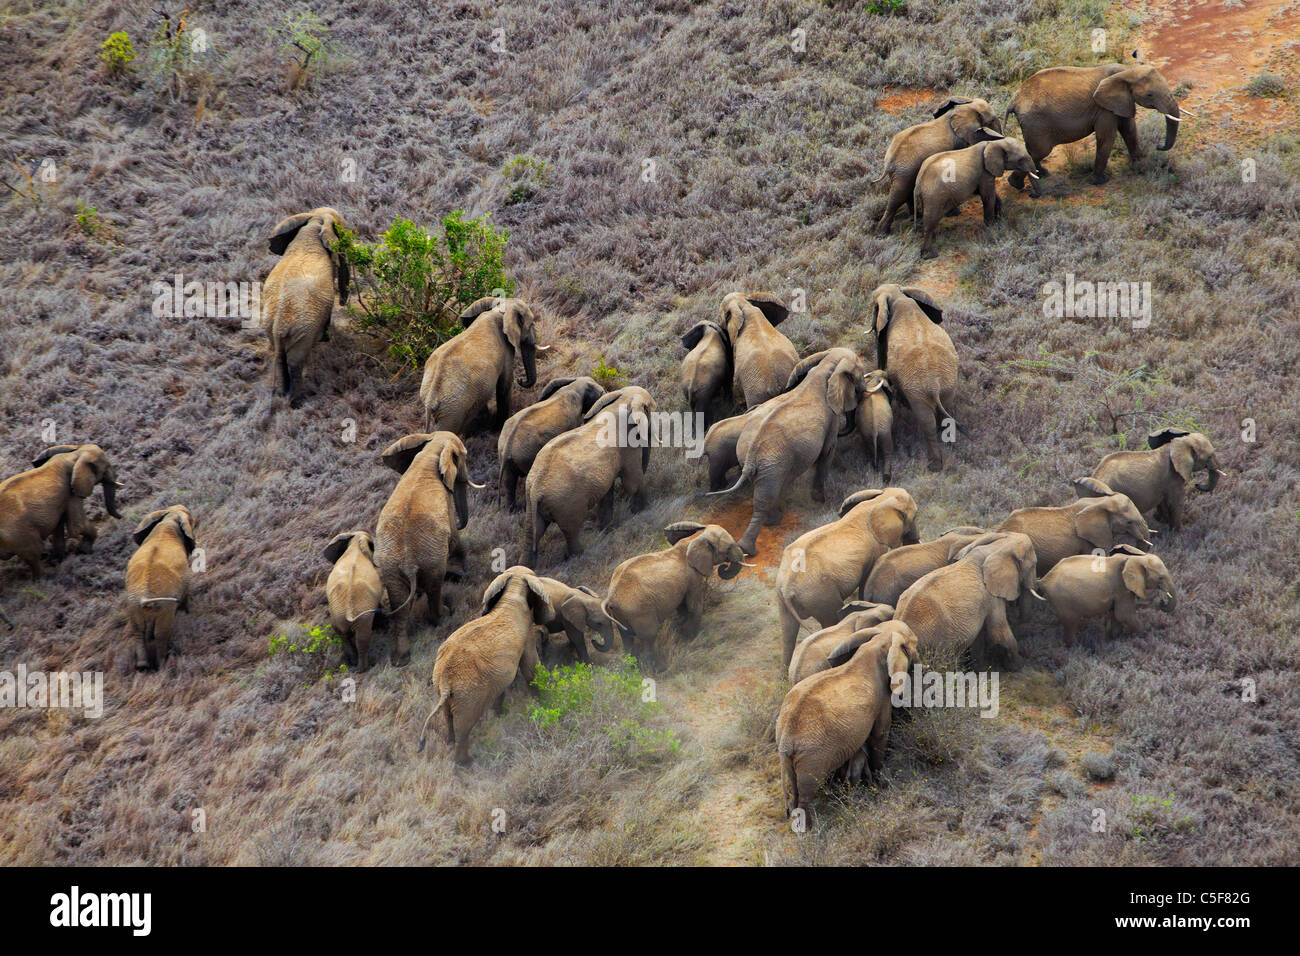 Aerial view of African elephant (Loxodonta africana) in Kenya. - Stock Image